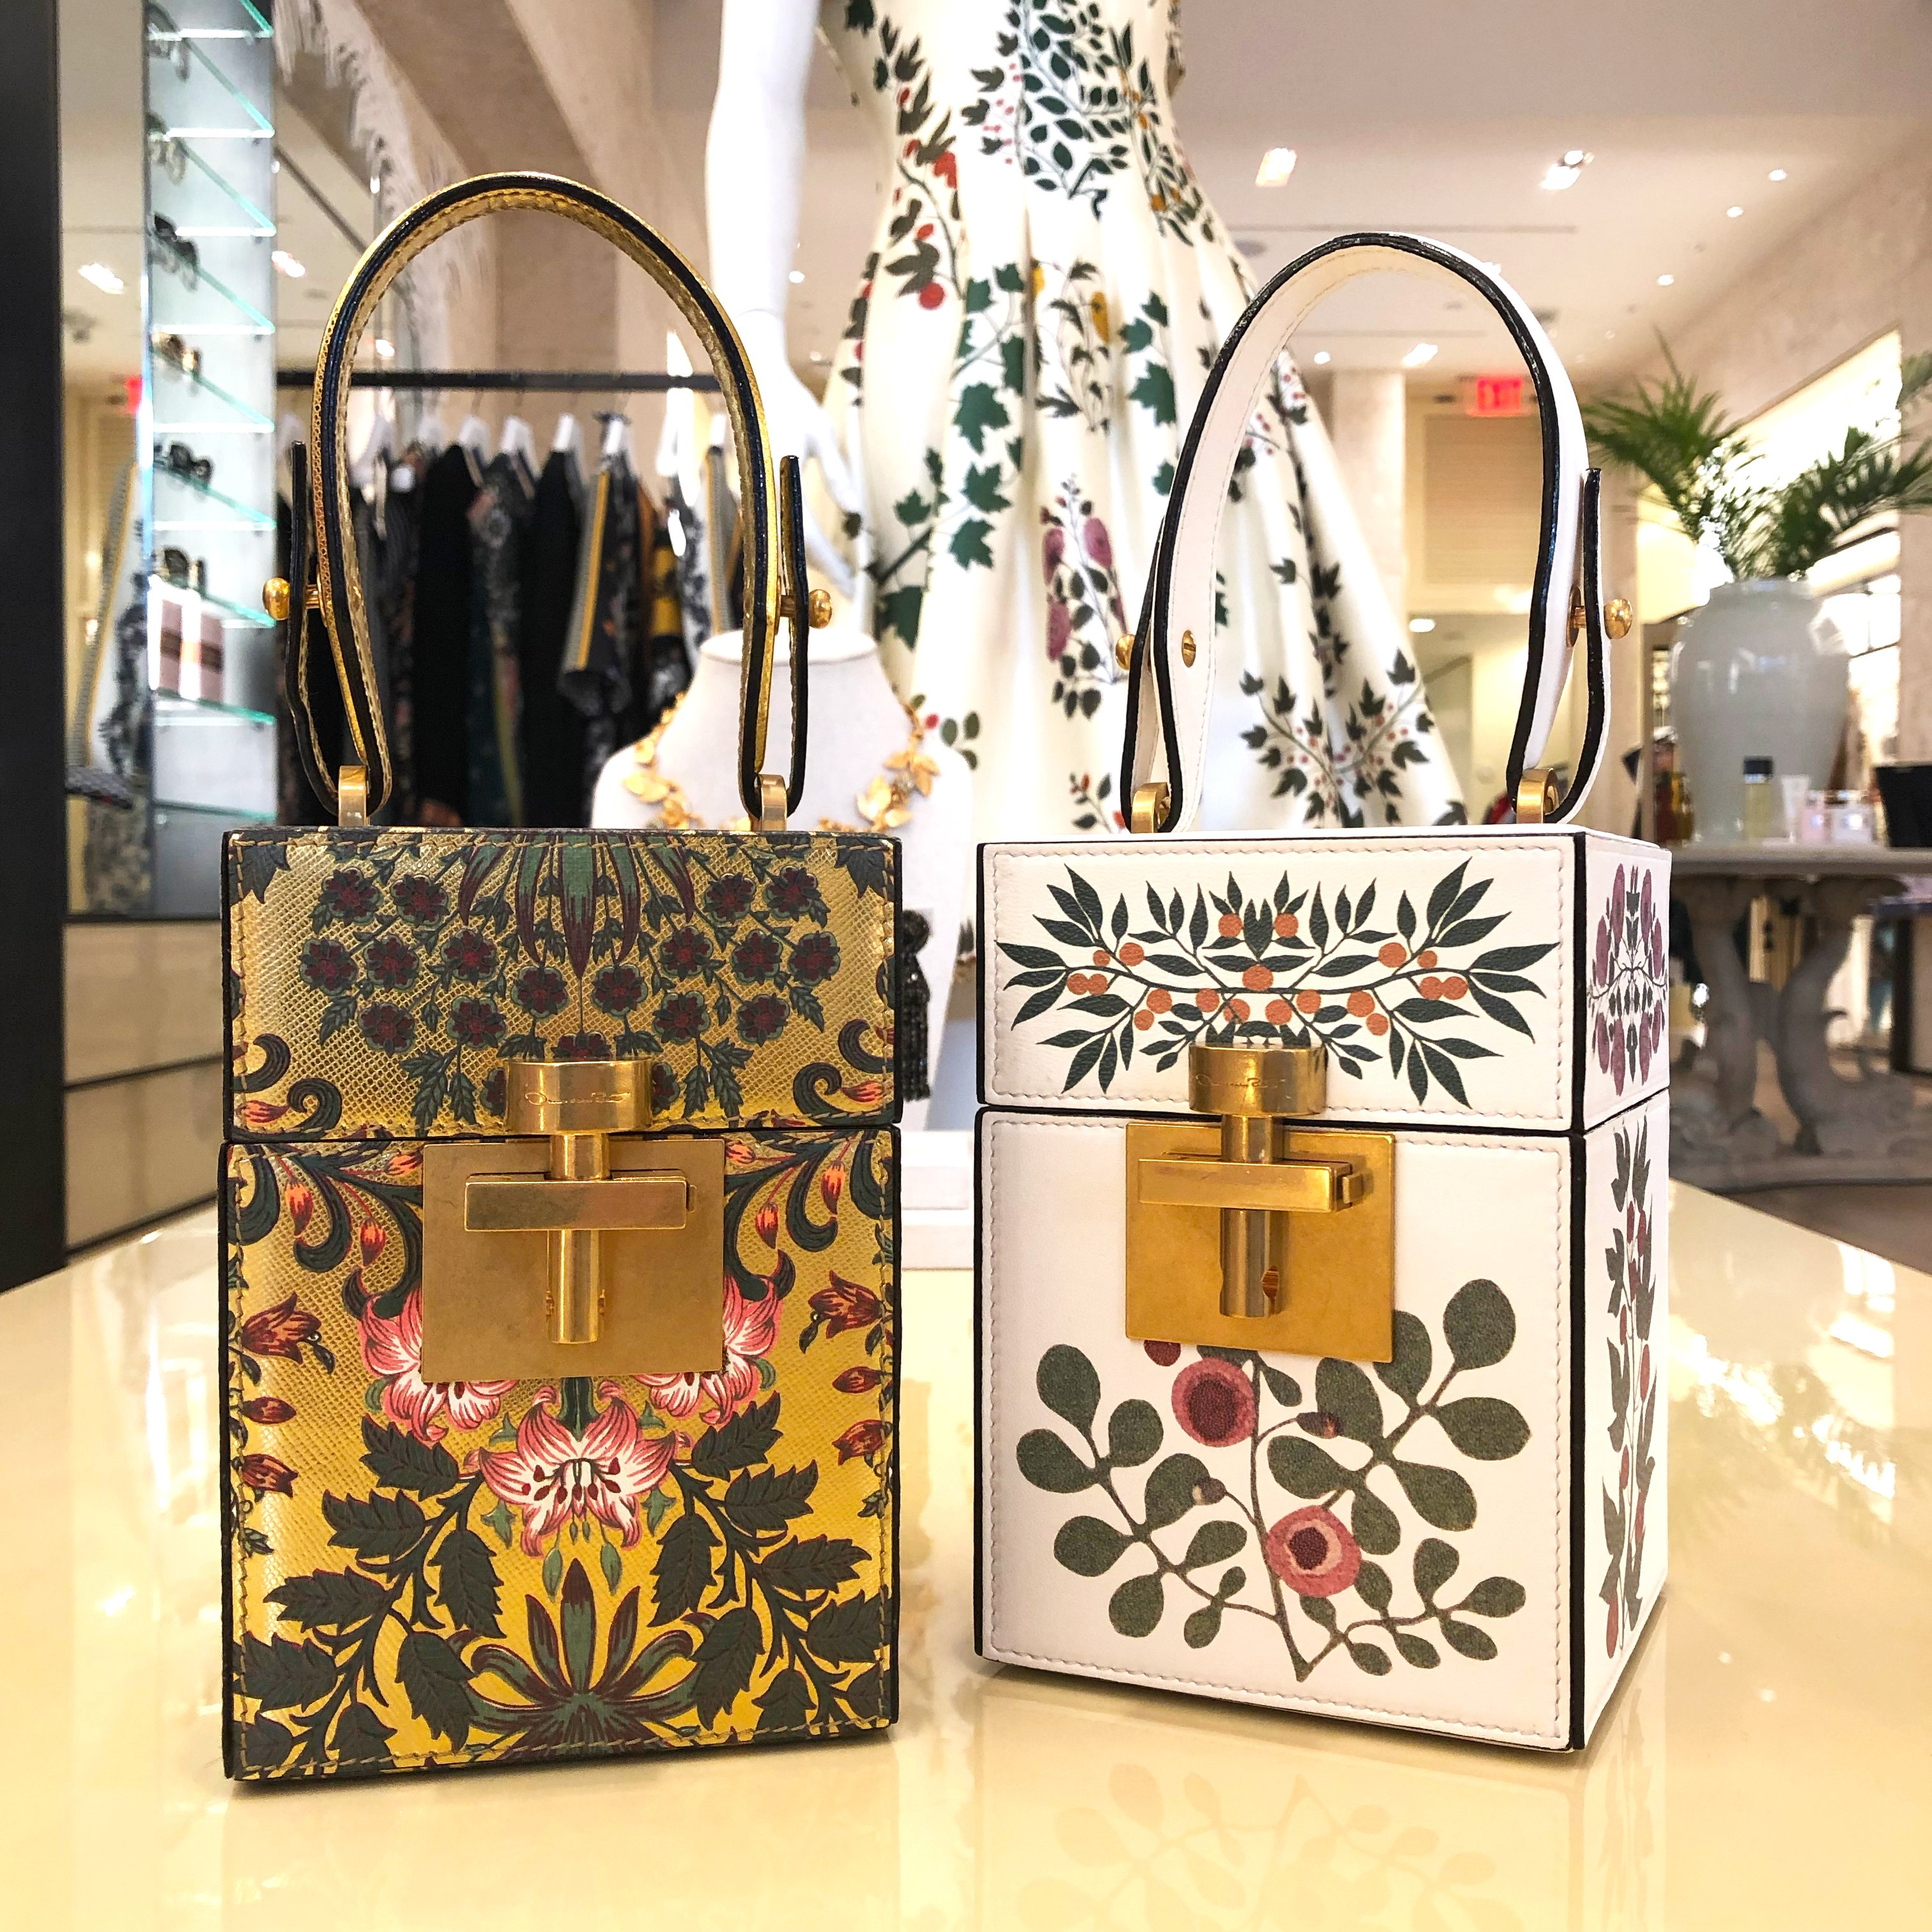 Oscar de la Renta Mini Alibi Bag inspired by vintage travel trunks, the Alibi bag is crafted from printed gold leather and printed shell leather with a lock clasp and a tonal top handle